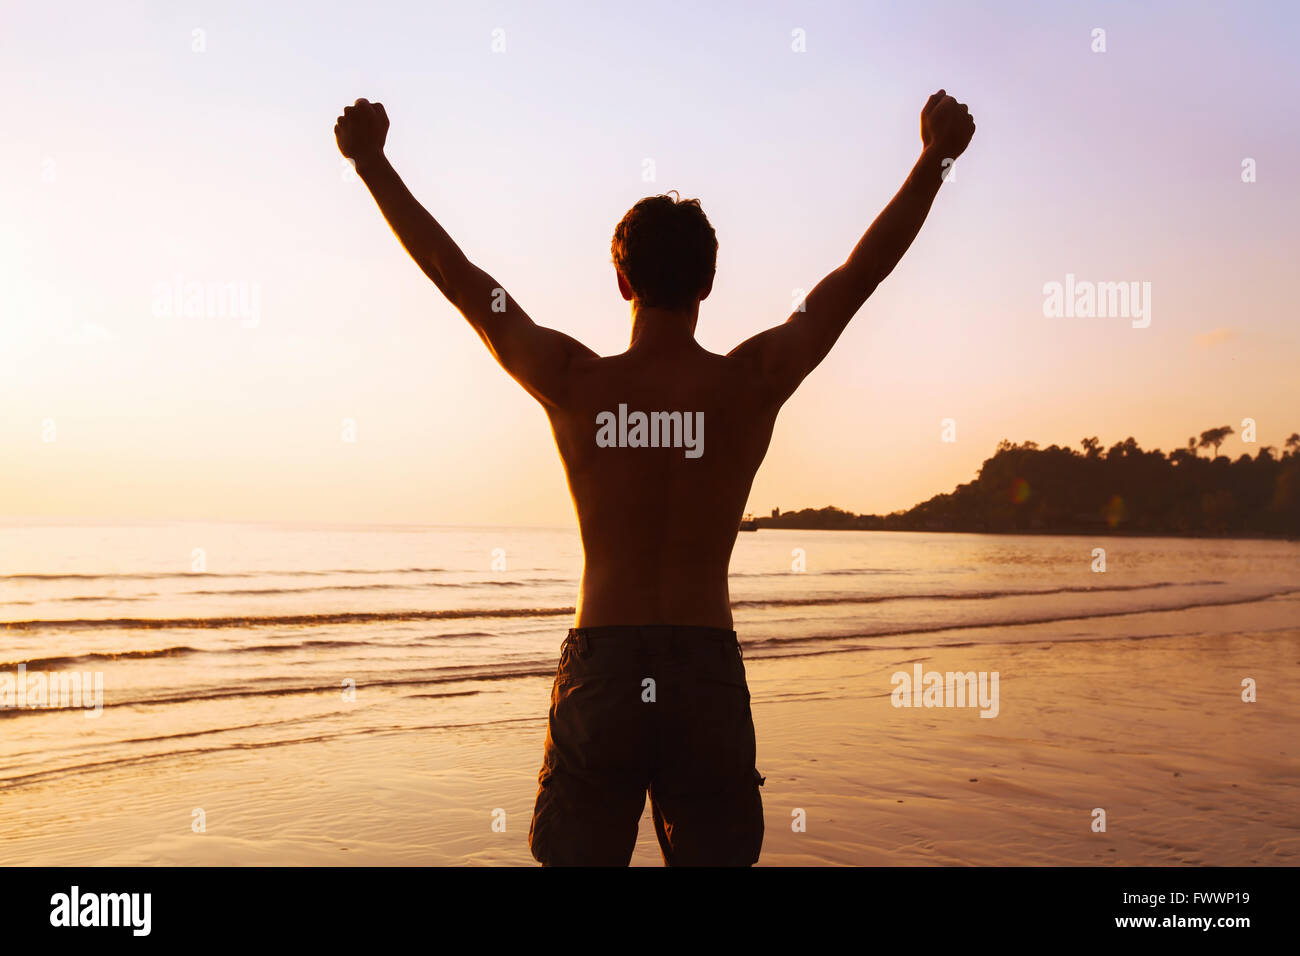 sport background, silhouette of strong sportive man on the beach, winner or achievement concept - Stock Image